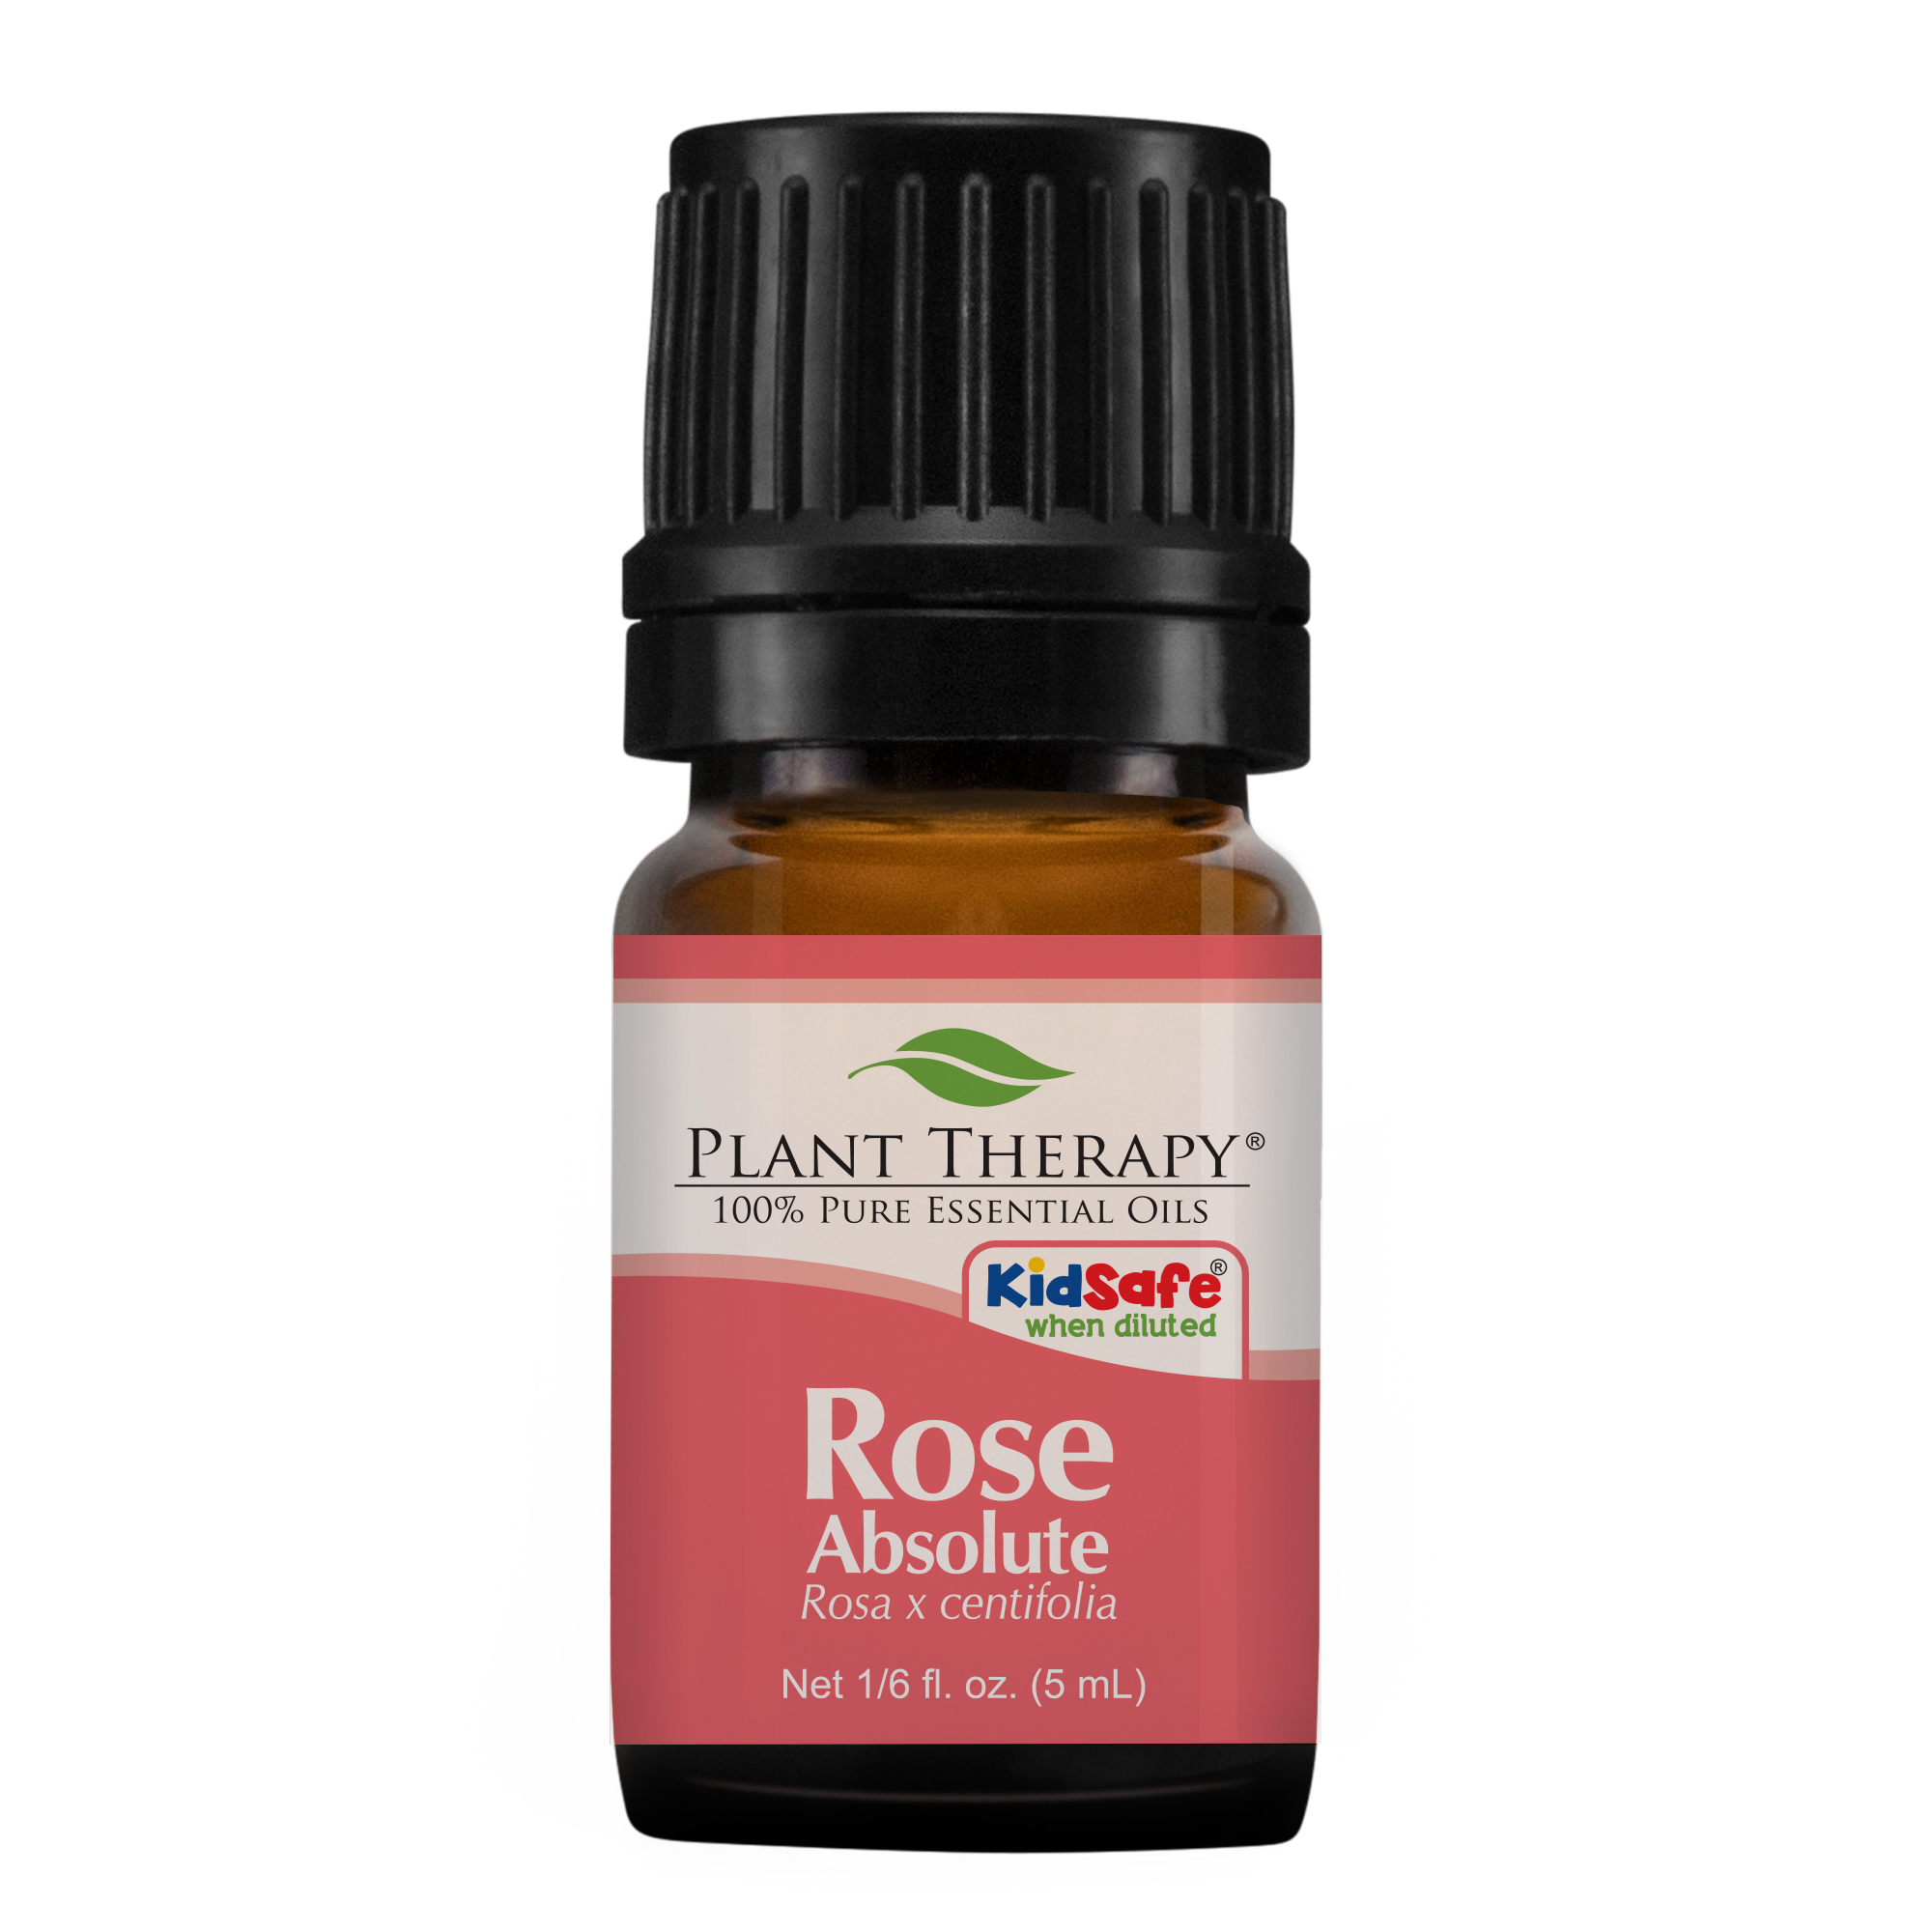 Plant Therapy Rose Absolute Essential Oil | 100% Pure, Undiluted, Natural Aromatherapy | 5 mL